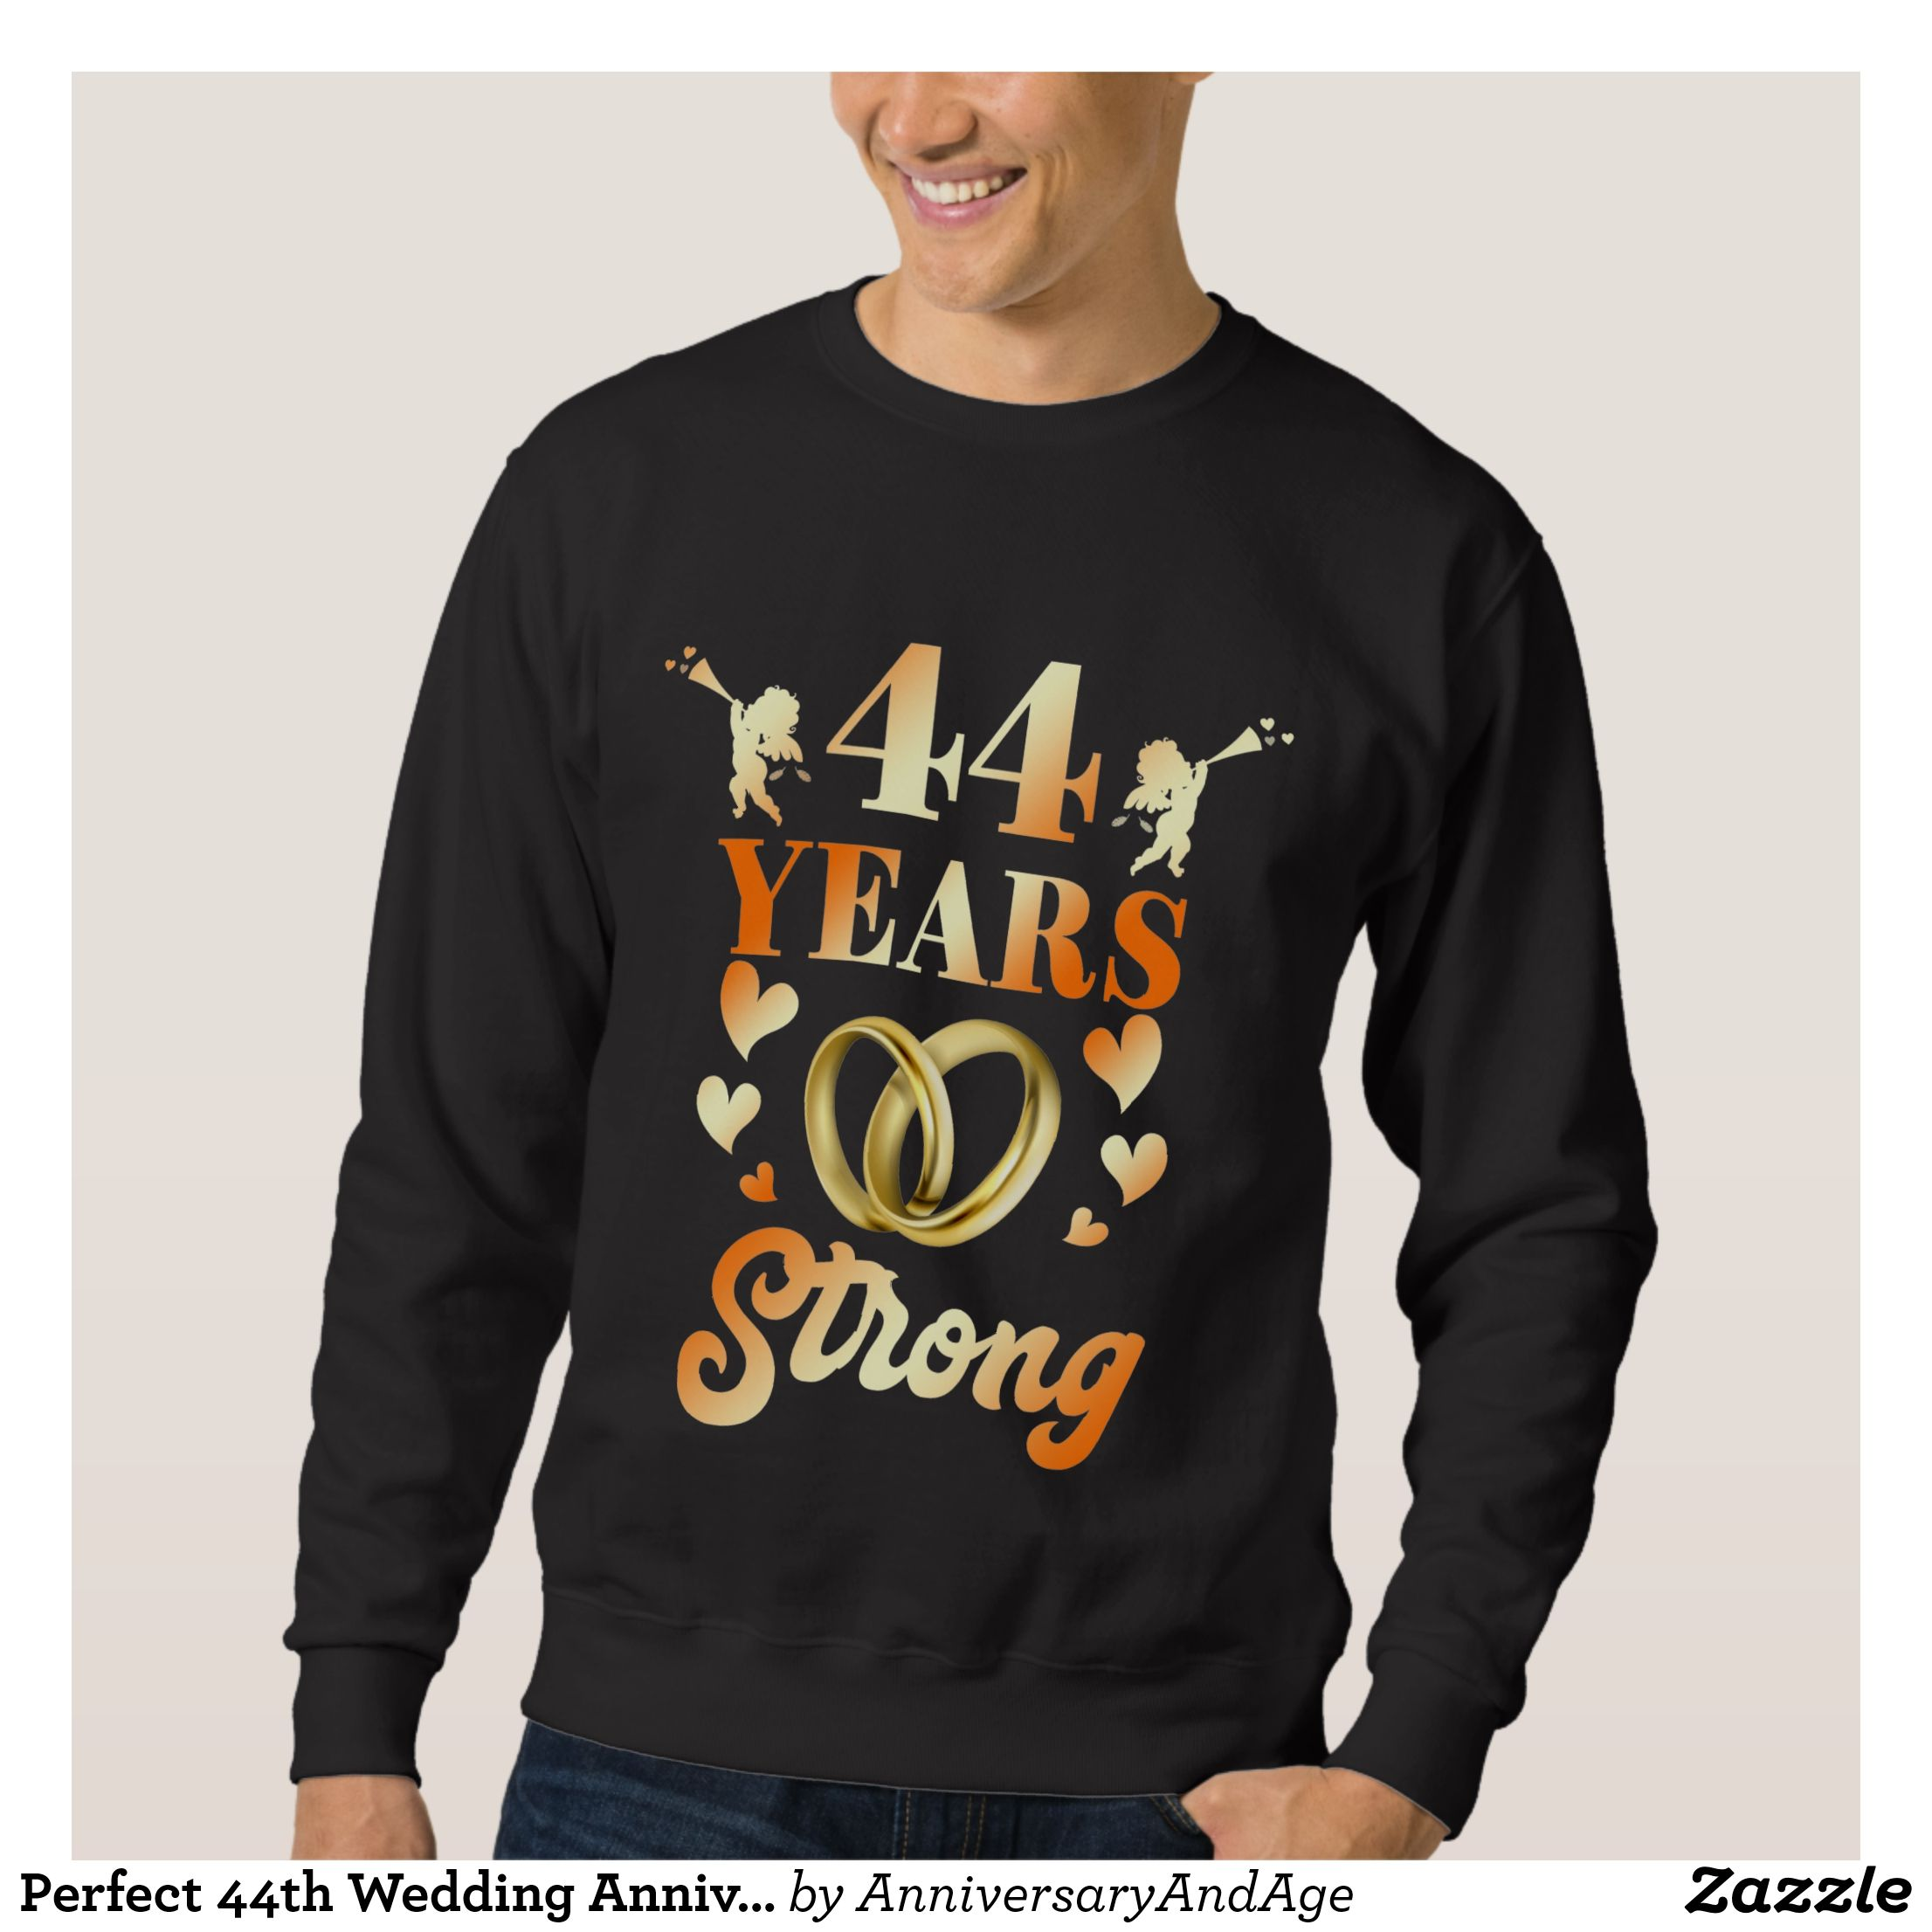 Perfect 44th Wedding Anniversary Gift For Couple Sweatshirt Zazzle Com 8th Wedding Anniversary Gift Anniversary Gifts For Couples 21st Wedding Anniversary